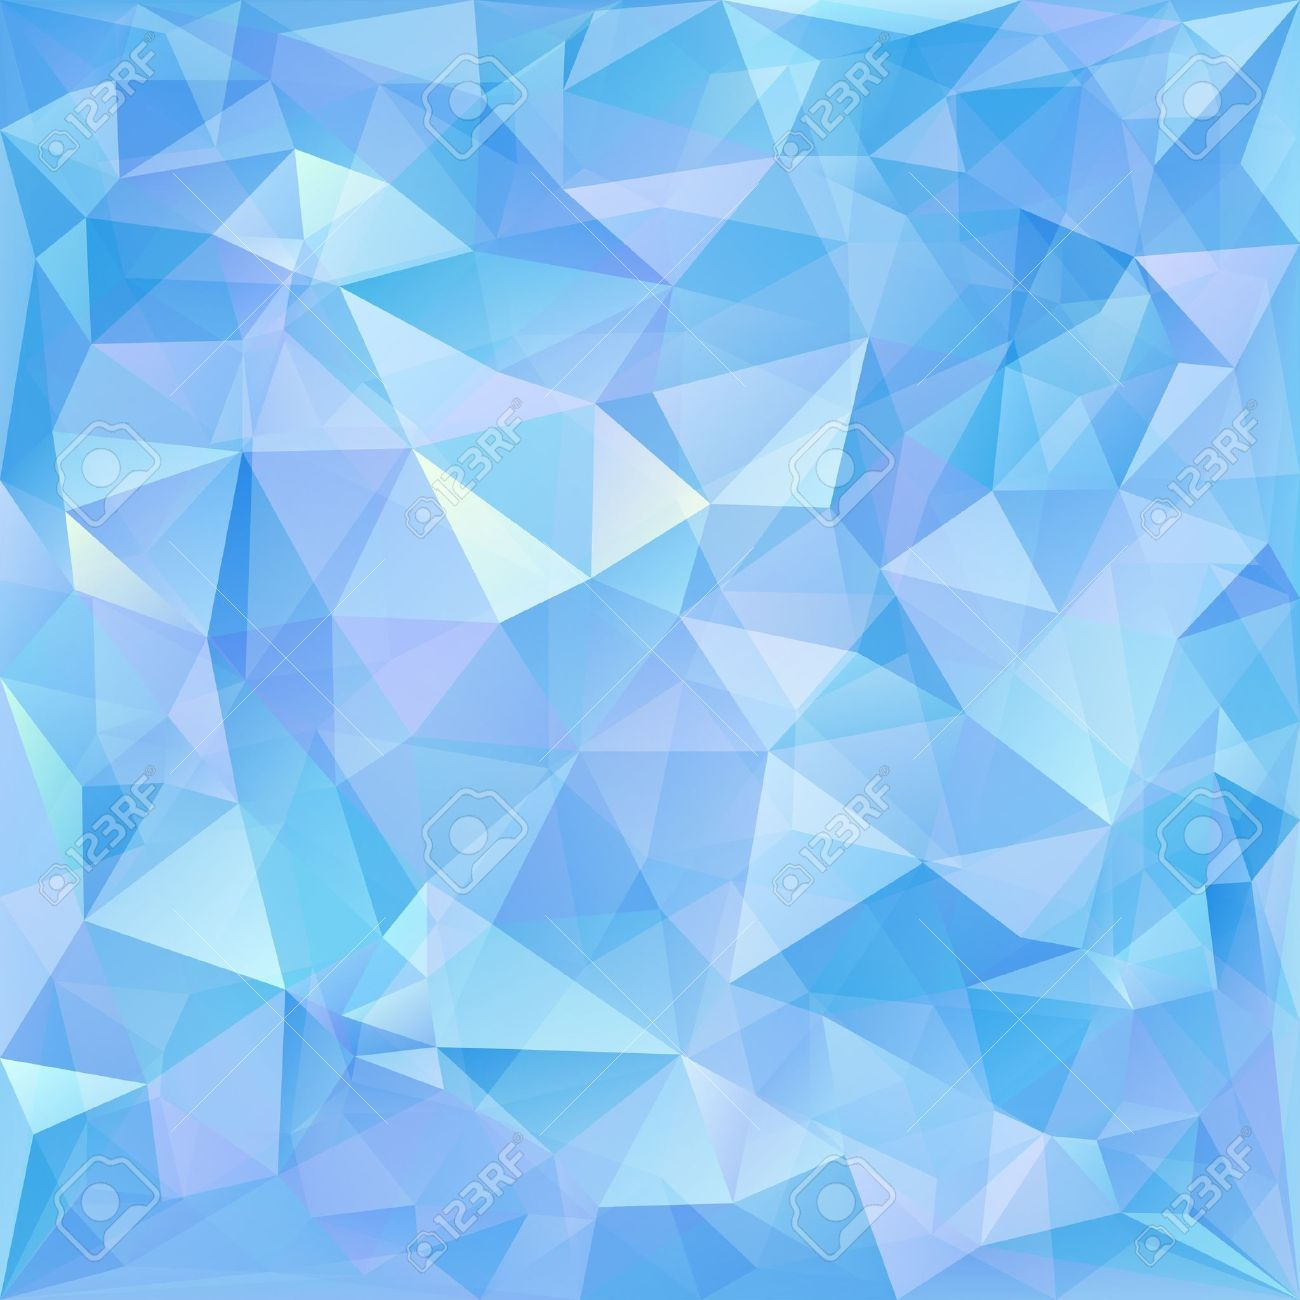 Image Result For Geometric Crystal Pattern